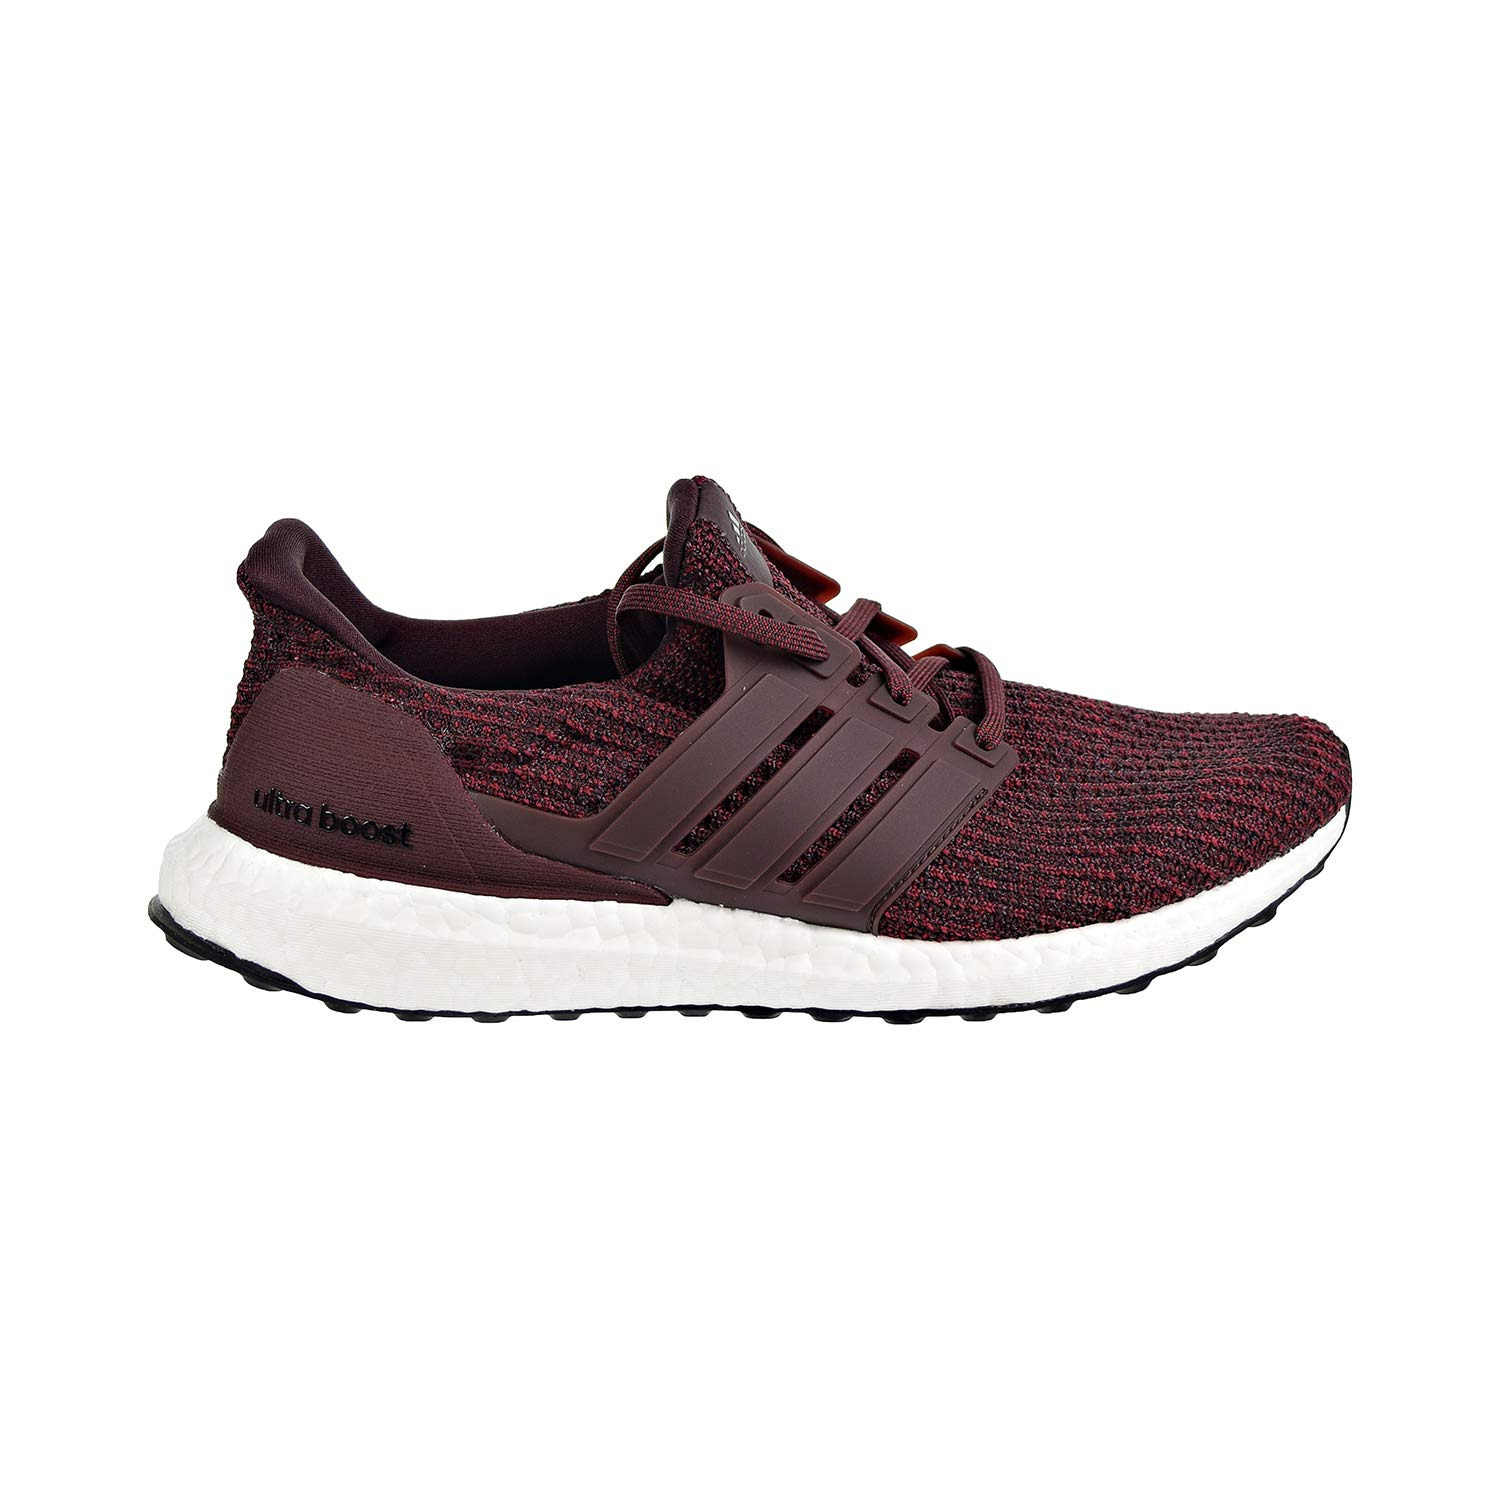 Men's Adidas Ultra Boost 4.0 Night Red Noble Maroon Size 12 | eBay